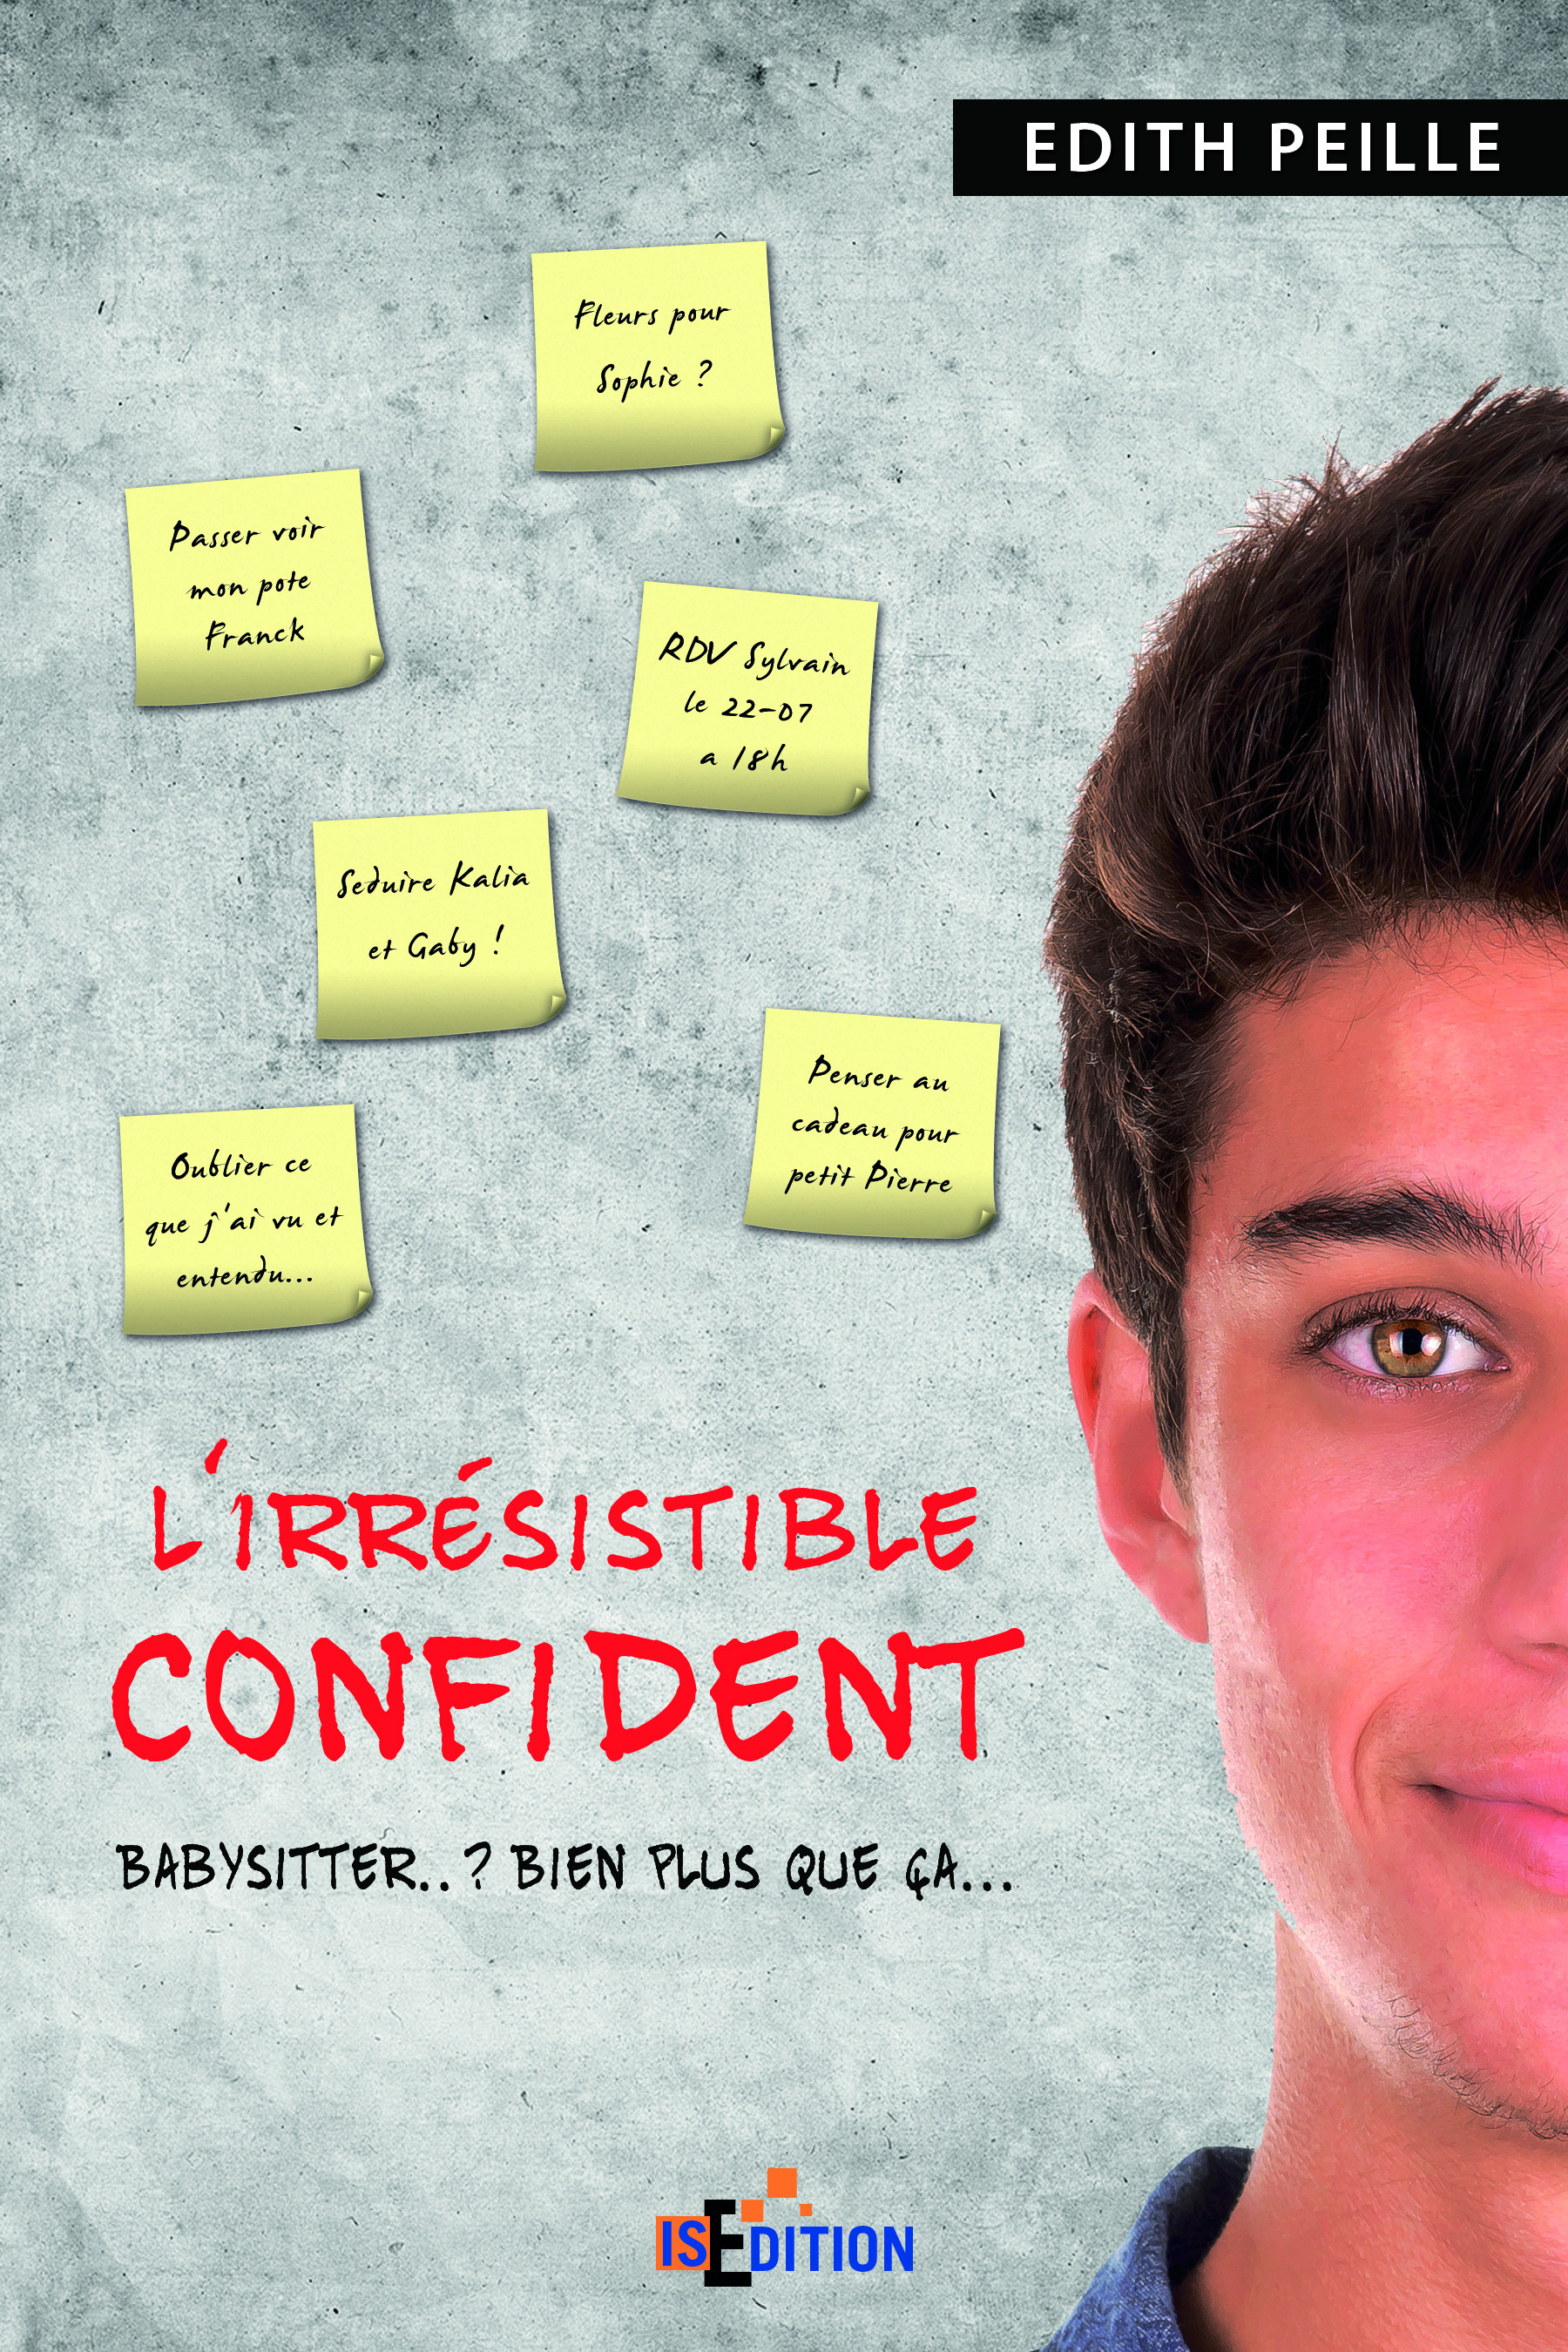 L'irresistible confident